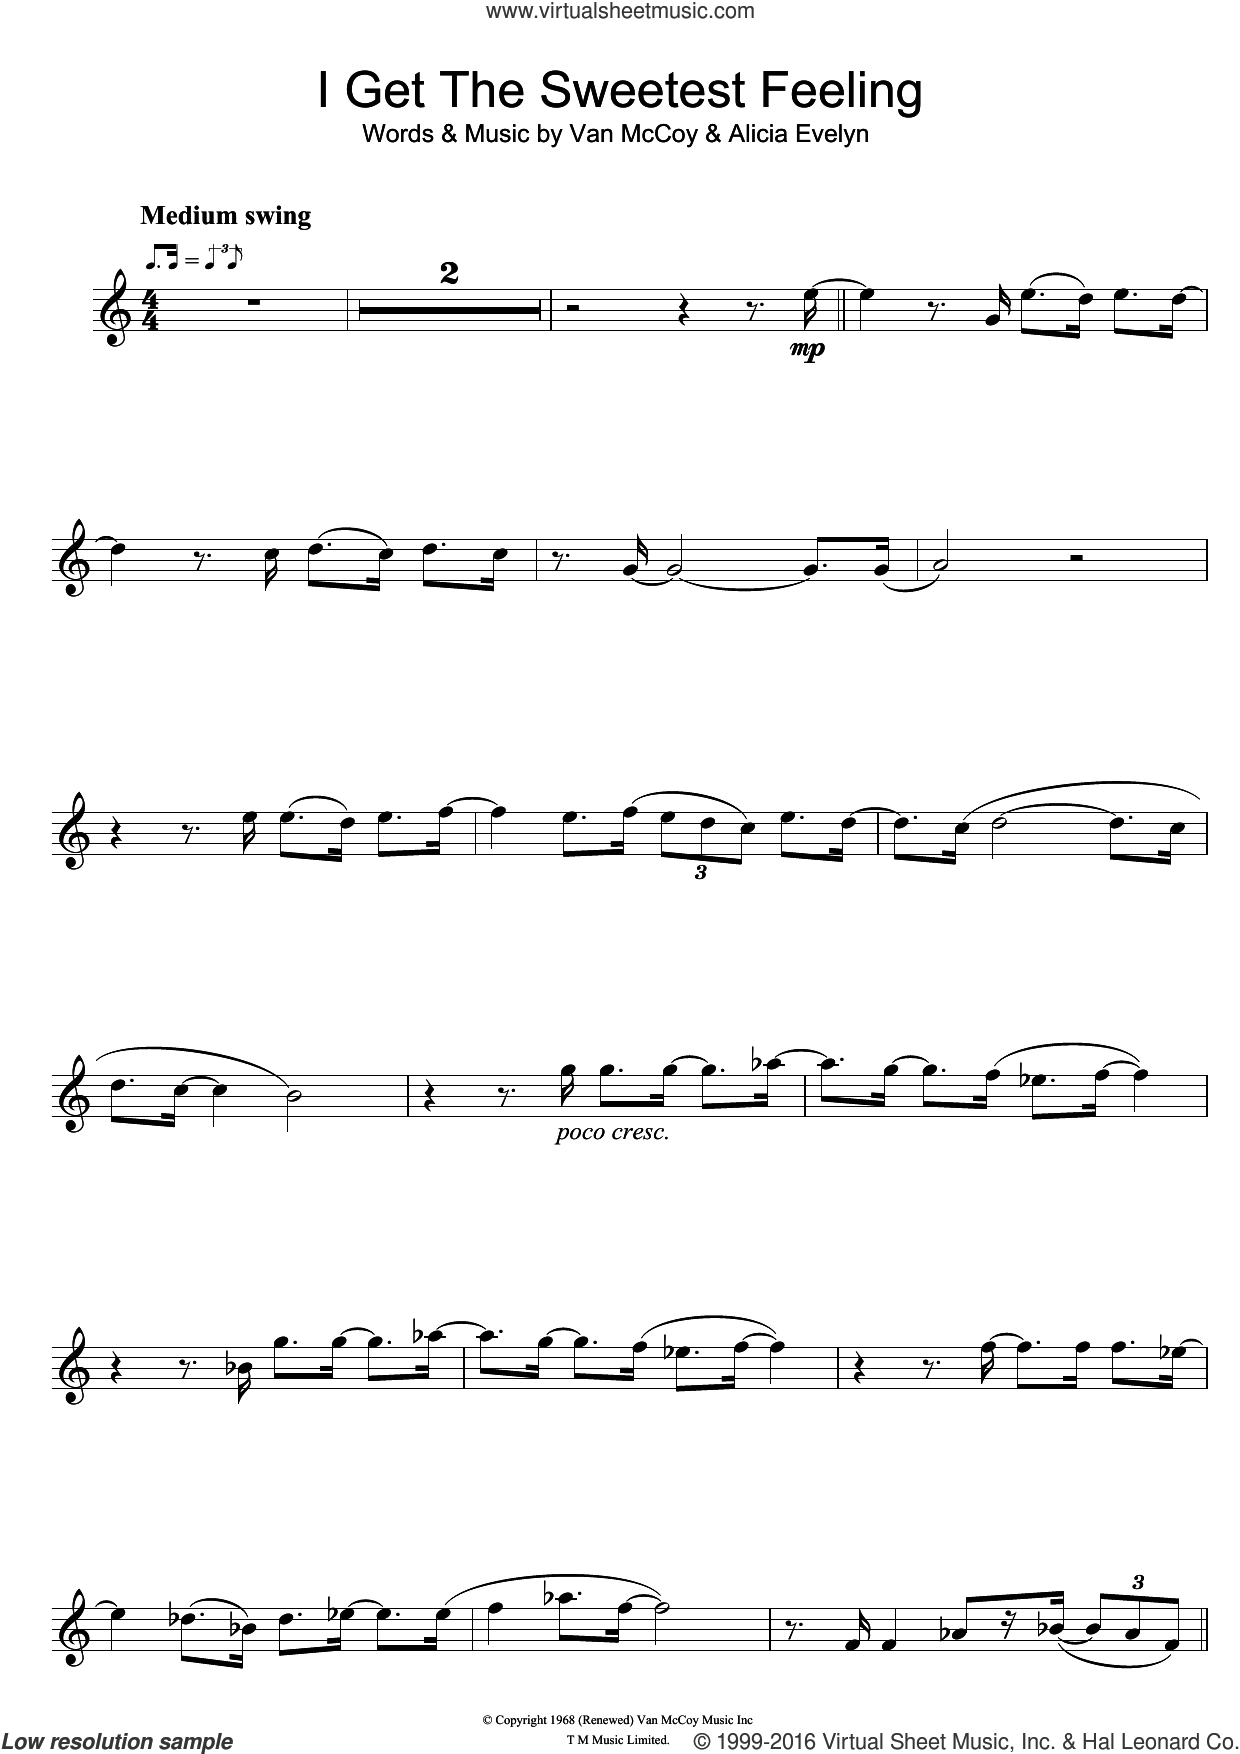 I Get The Sweetest Feeling sheet music for trumpet solo by Jackie Wilson, Alicia Evelyn and Van McCoy, intermediate skill level